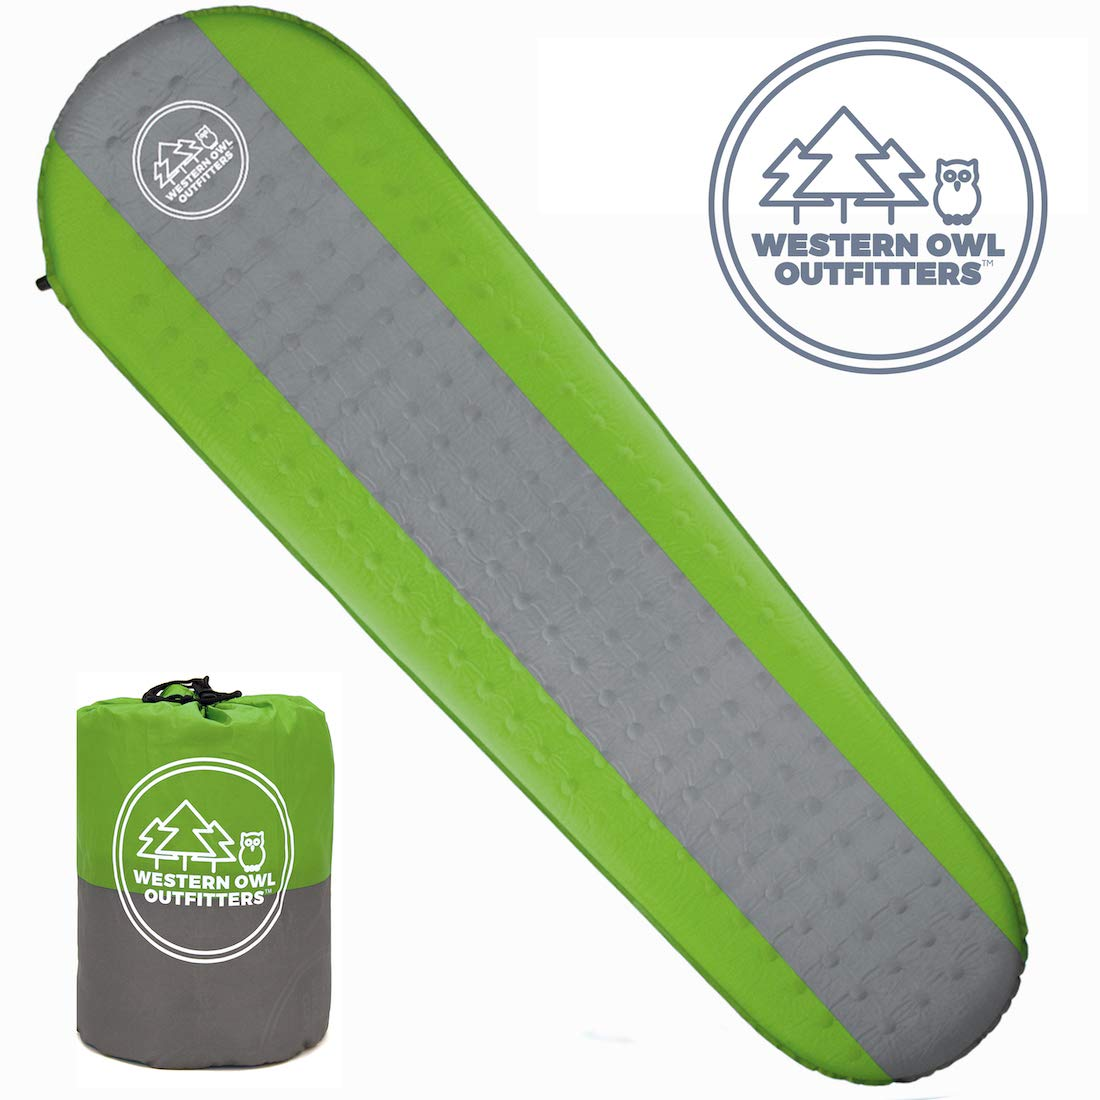 Best Self Inflating Sleeping pad Lightweight Camping Foam pad- Best for Camping Backpacking & Hiking. R Value of 4.9 - Inflatable Camping Mattress (Green, Large) by Roman Trail Outfitters